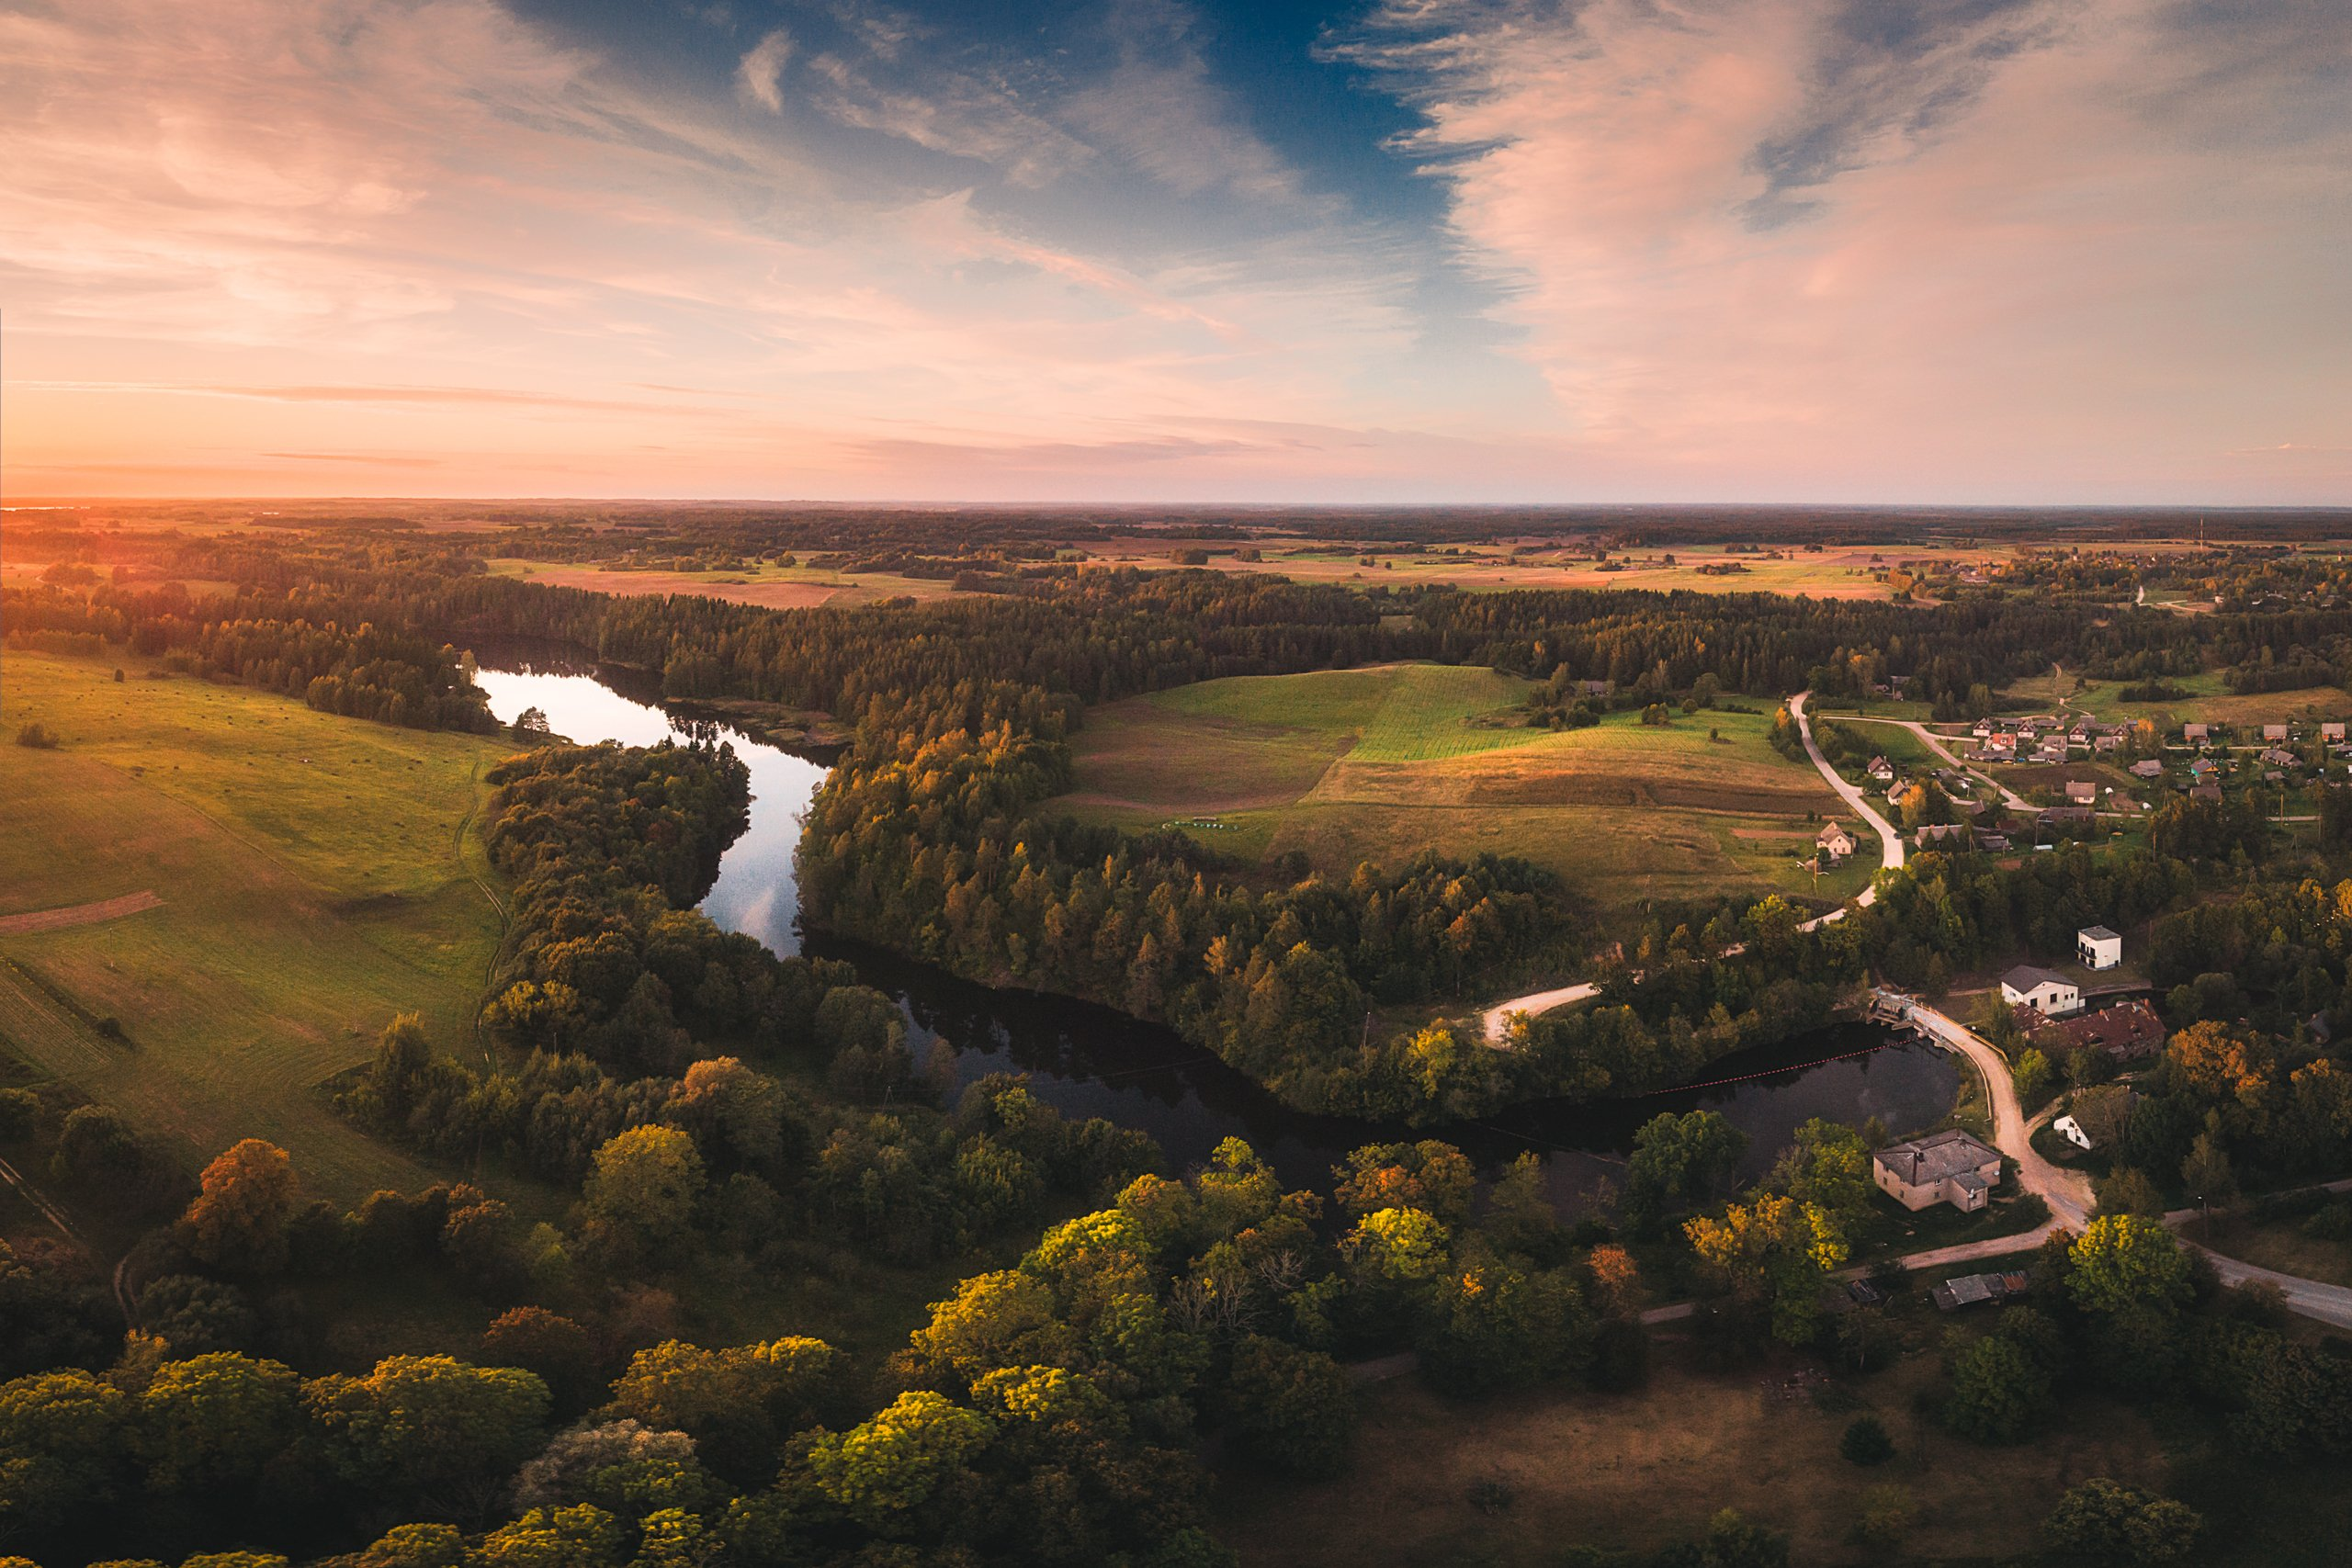 landscape,summer,drone,river,sunset,пейзаж,речка,латгалия,закат, Olegs Bucis